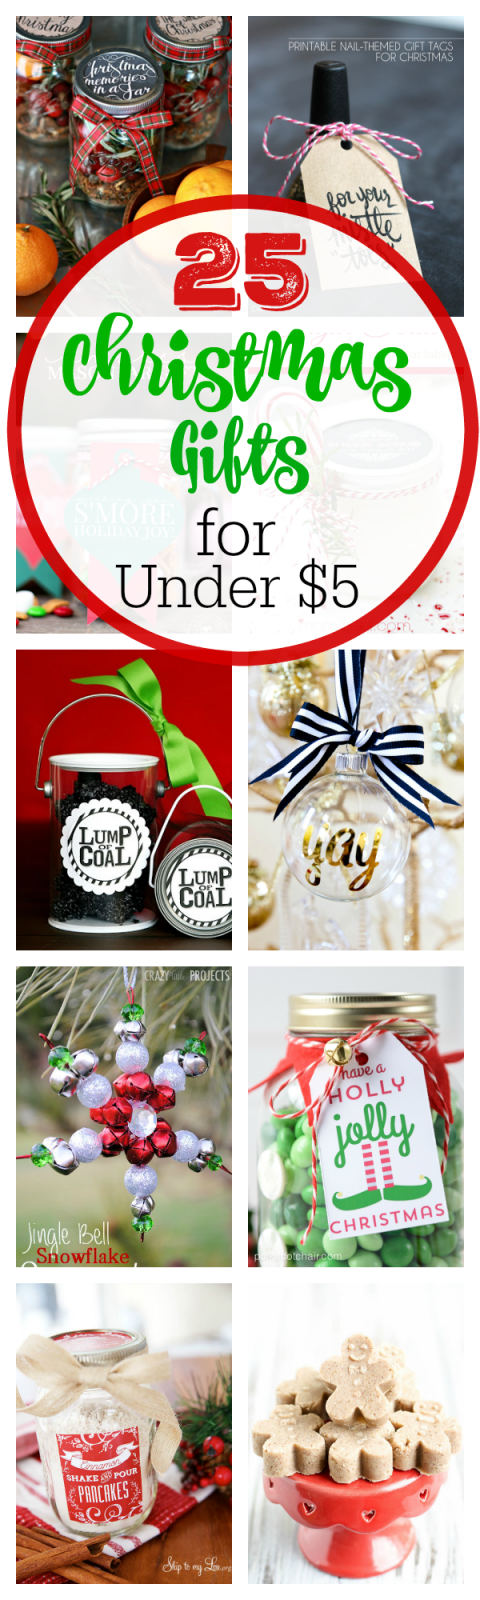 Christmas Gifts For Coworkers Under 10.25 Creative Cheap Christmas Gifts That Cost Under 10